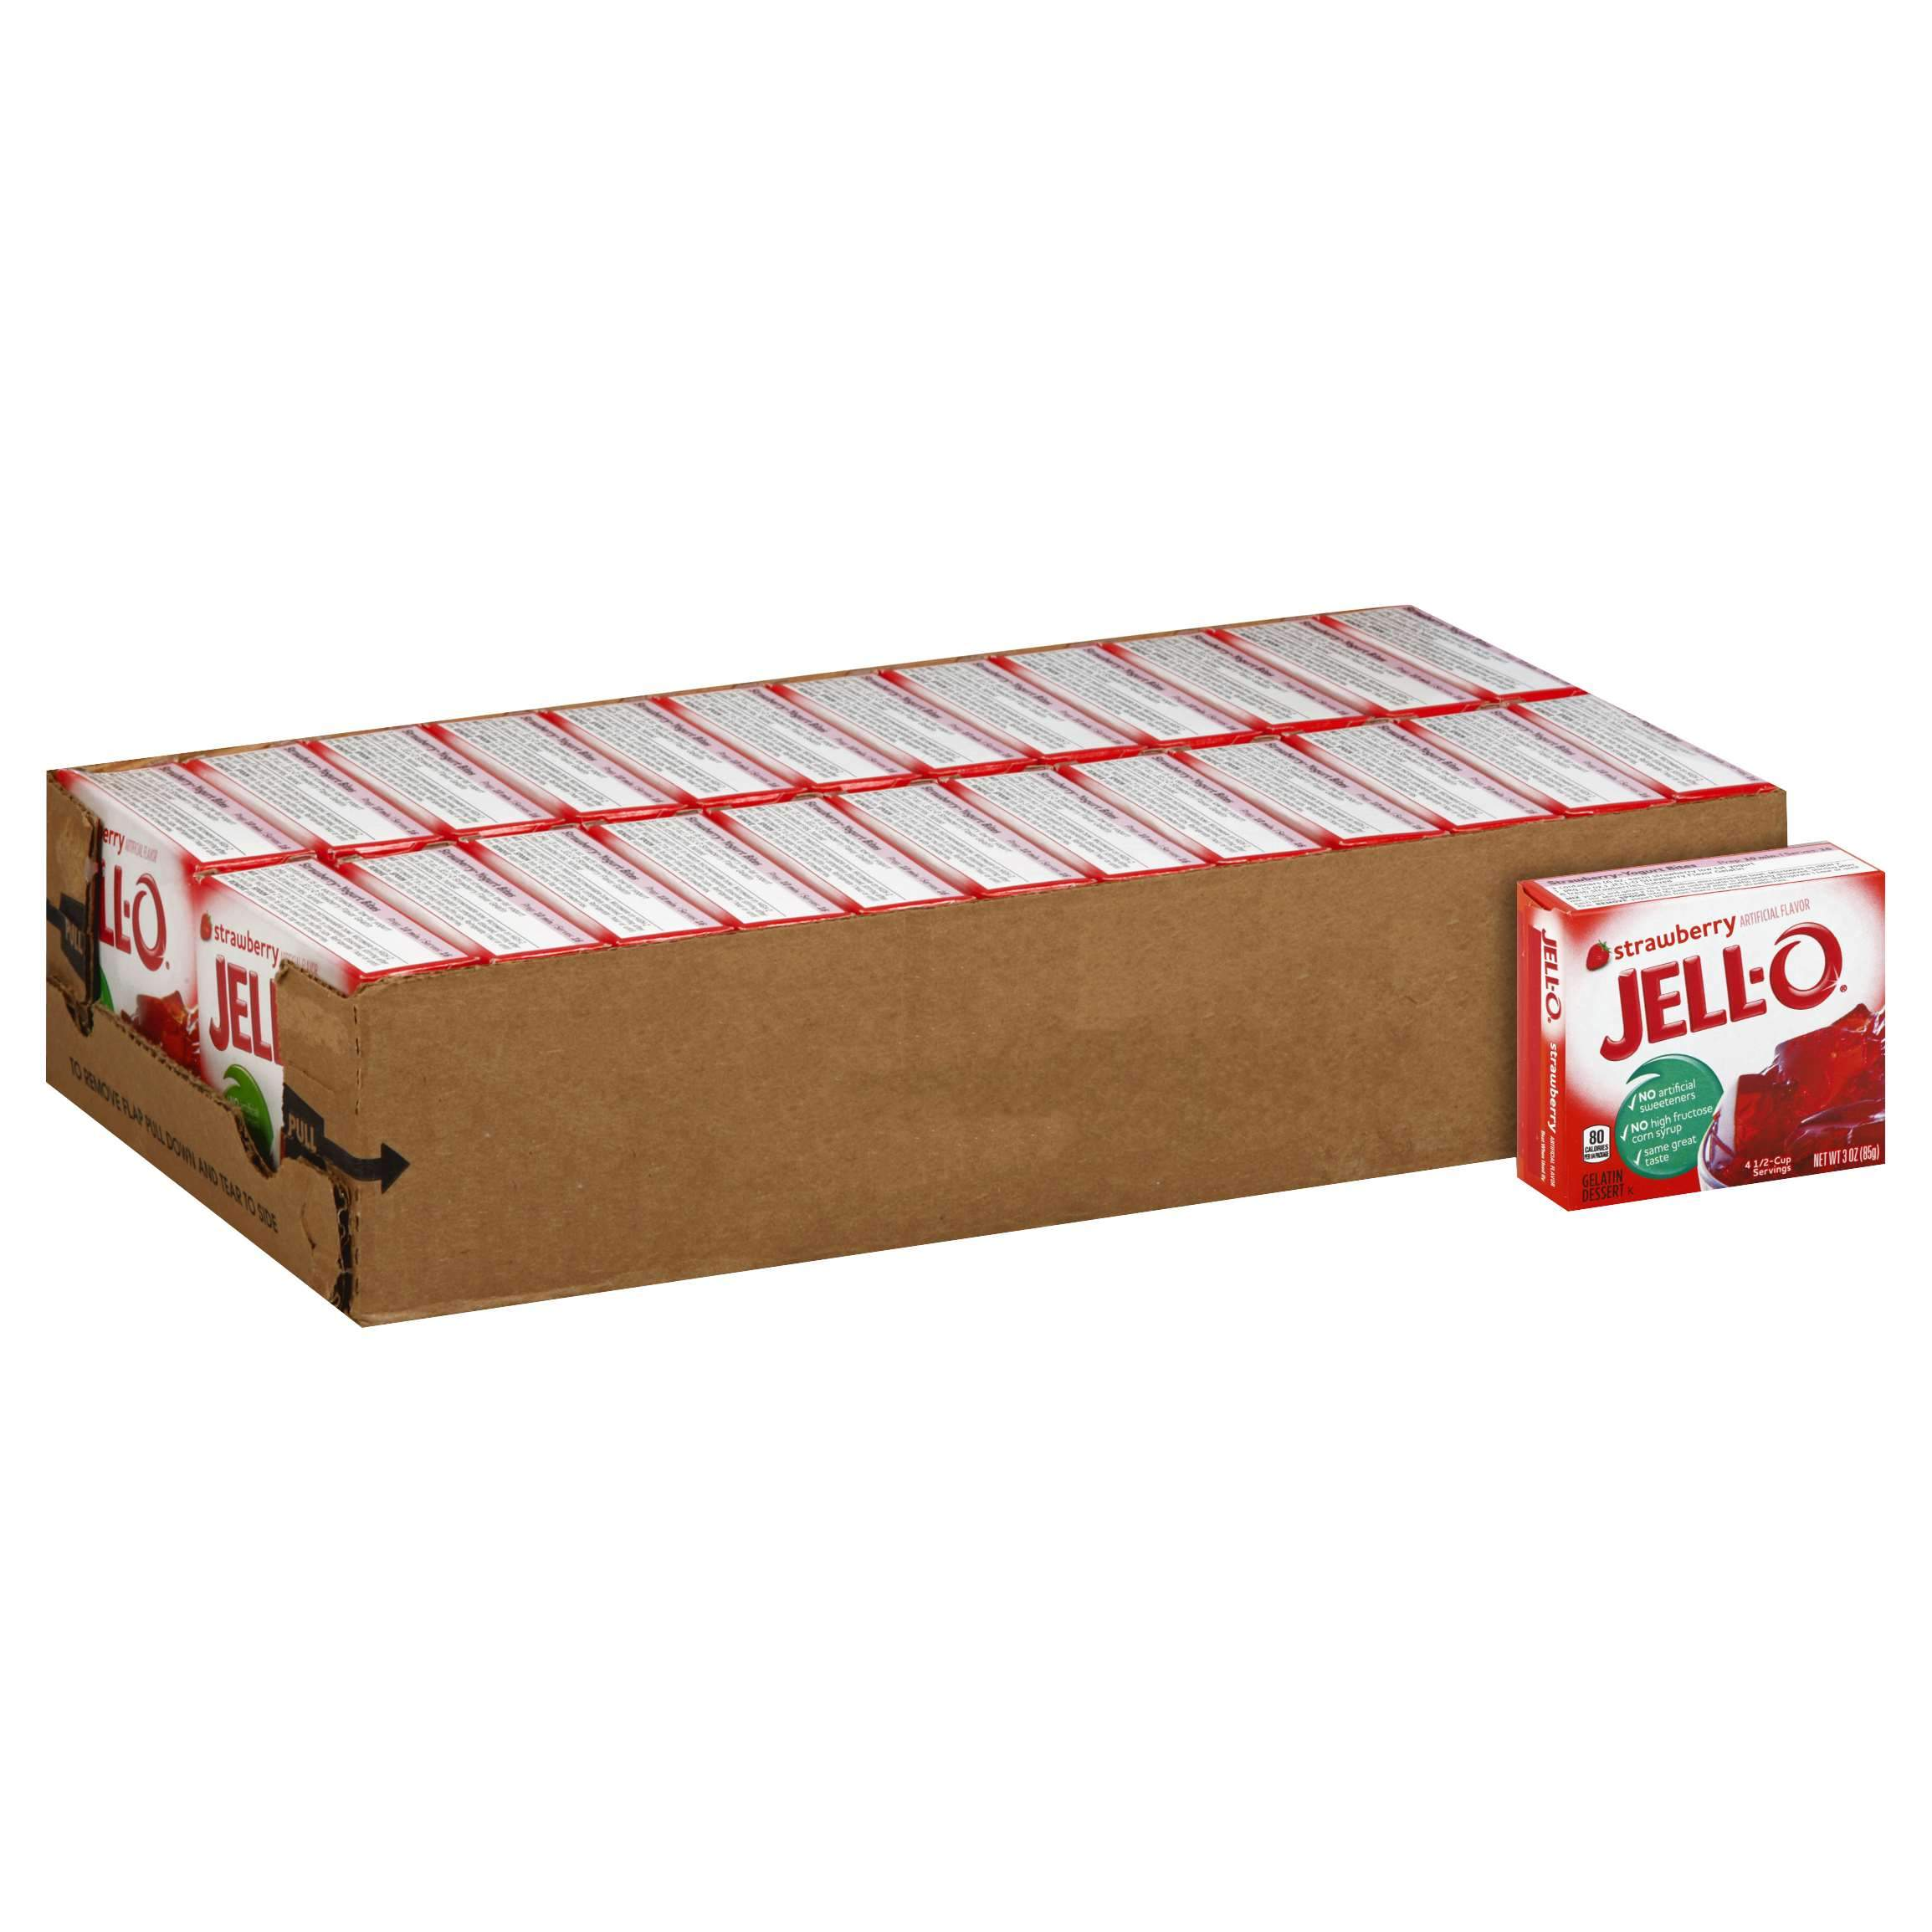 Jell-O Gelatin Mix Jell-O Strawberry 3 Oz-24 Count